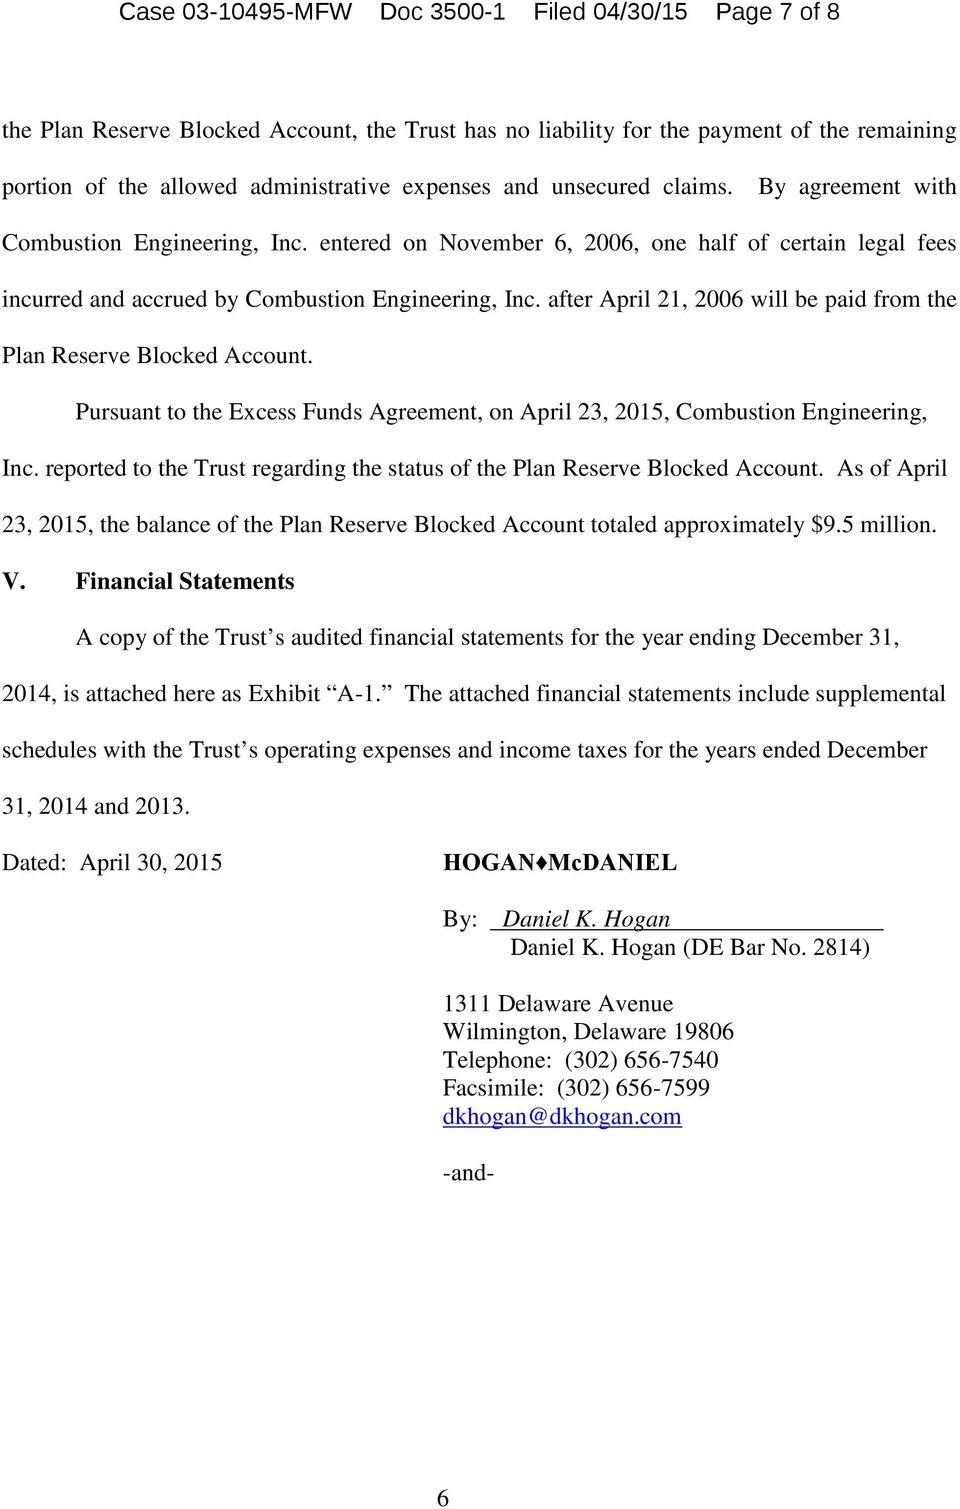 after April 21, 2006 will be paid from the Plan Reserve Blocked Account. Pursuant to the Excess Funds Agreement, on April 23, 2015, Combustion Engineering, Inc.